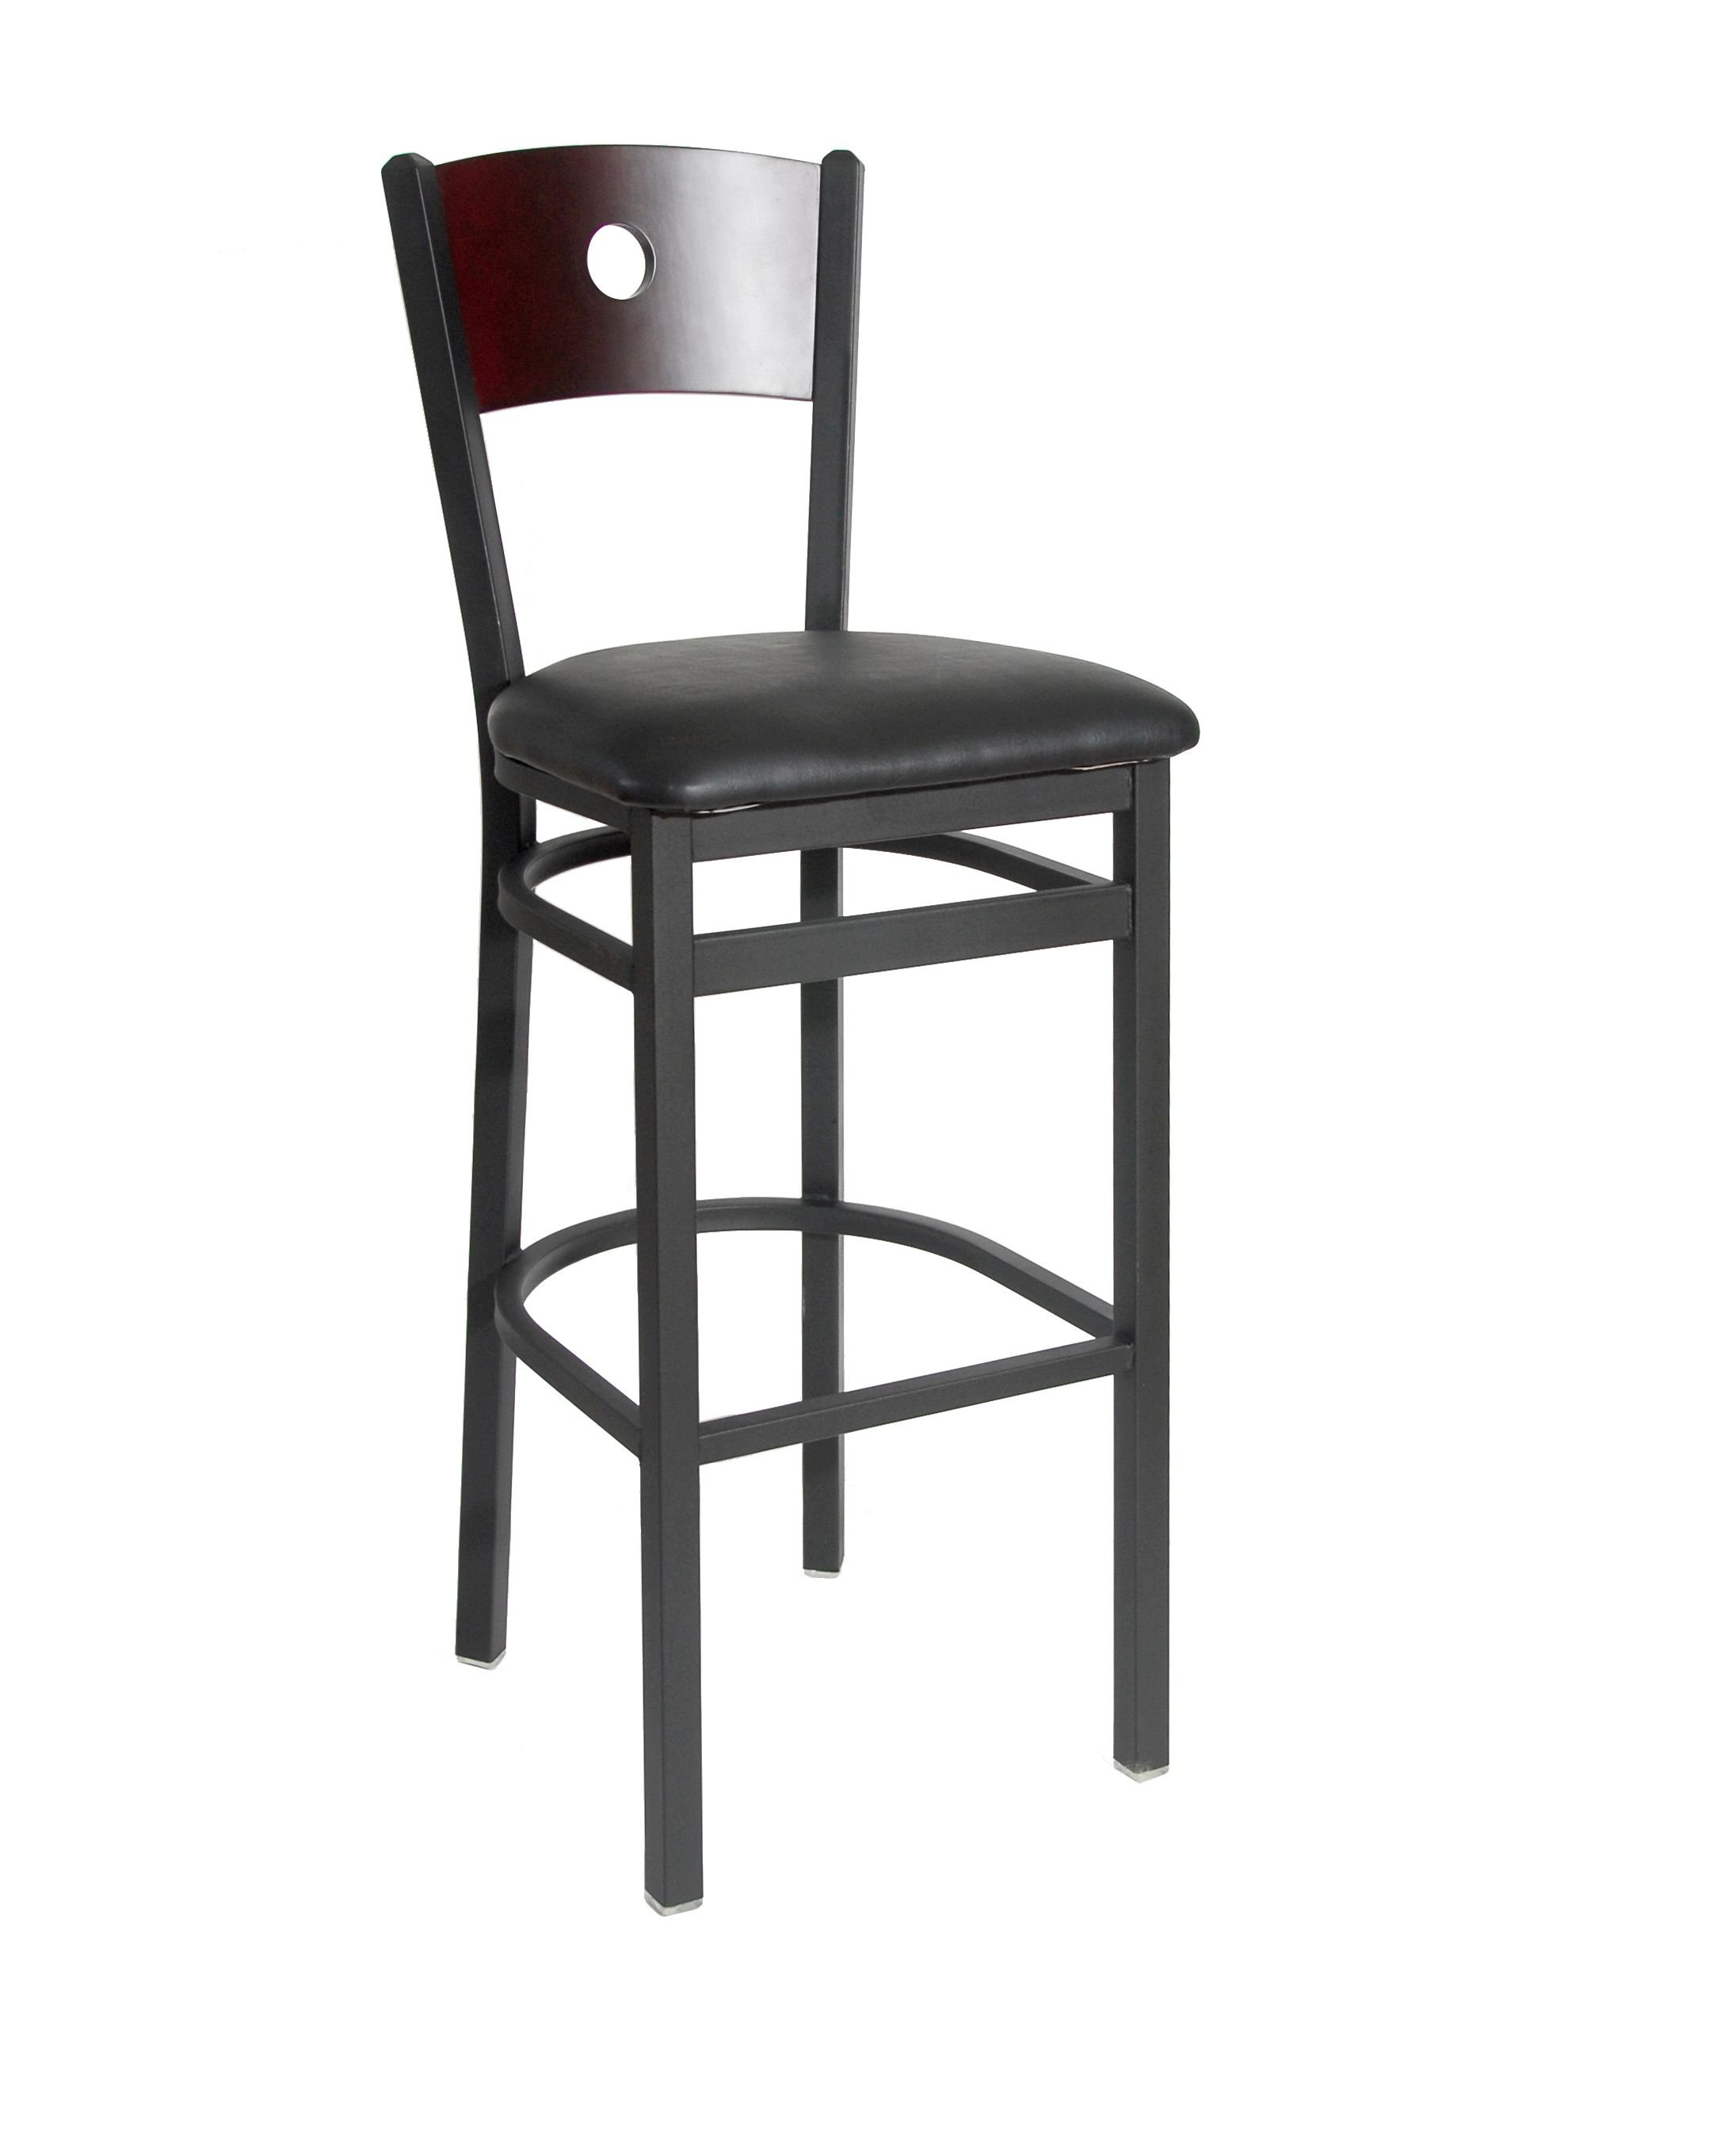 Darby restaurant bar stools